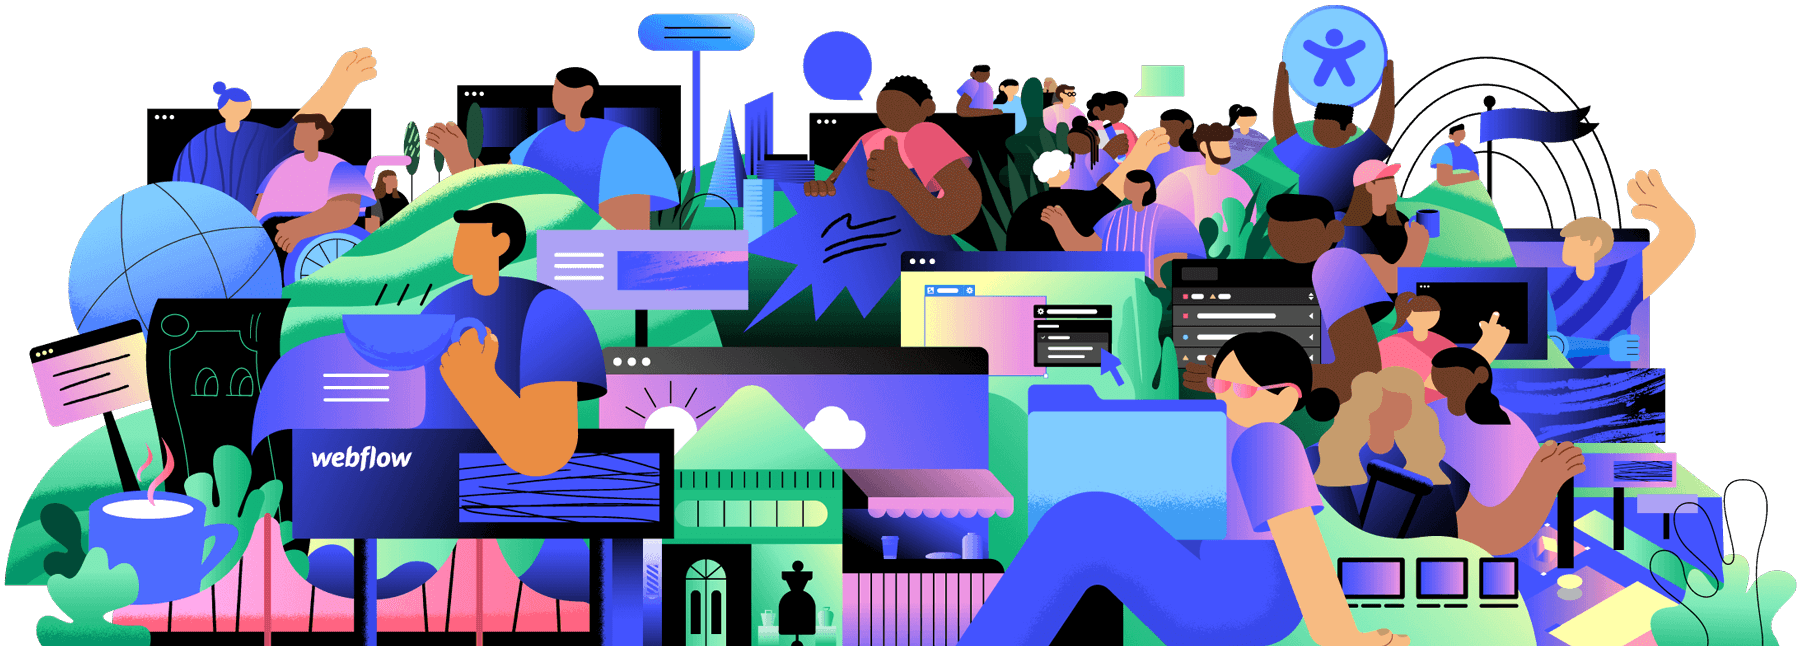 A diverse group of illustrated people lounge around a landscape of Webflow websites and features launched in 2020.